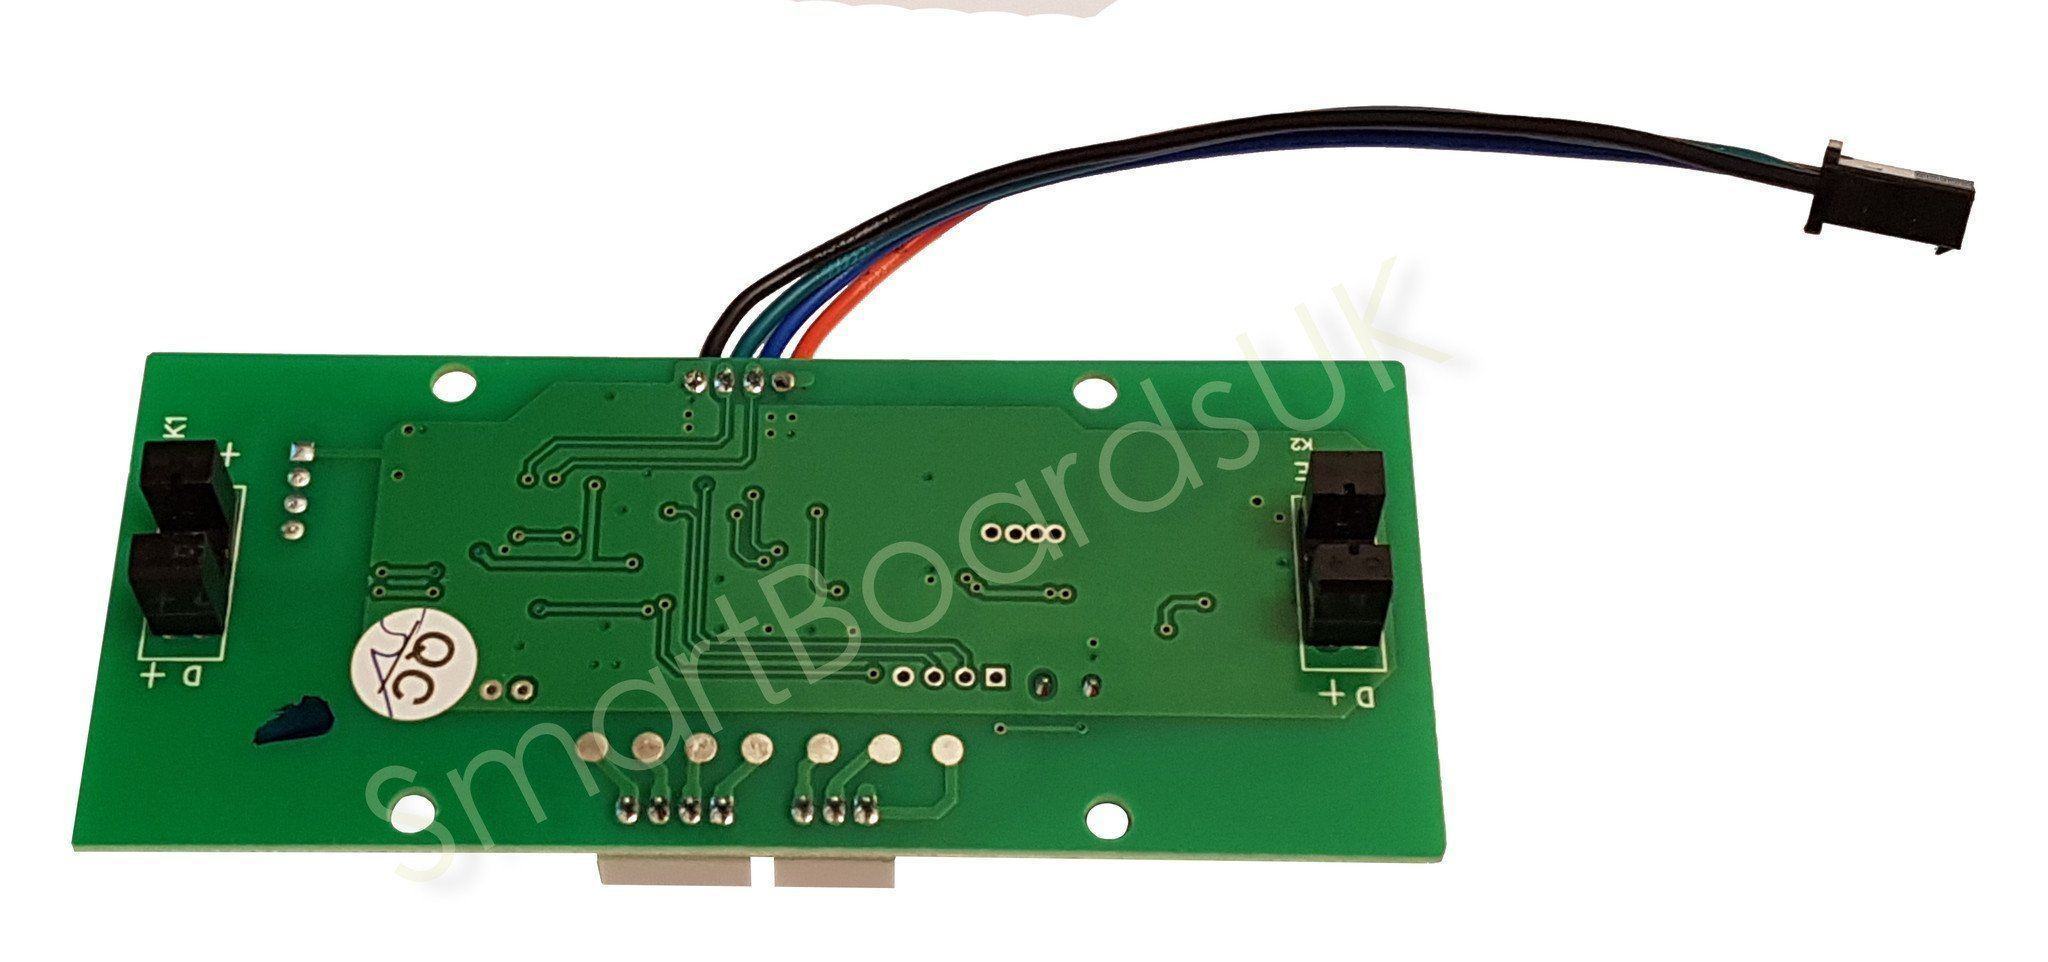 GYRO CIRCUIT BOARD (WIRED TYPE) - SINGLE-Smart Boards UK